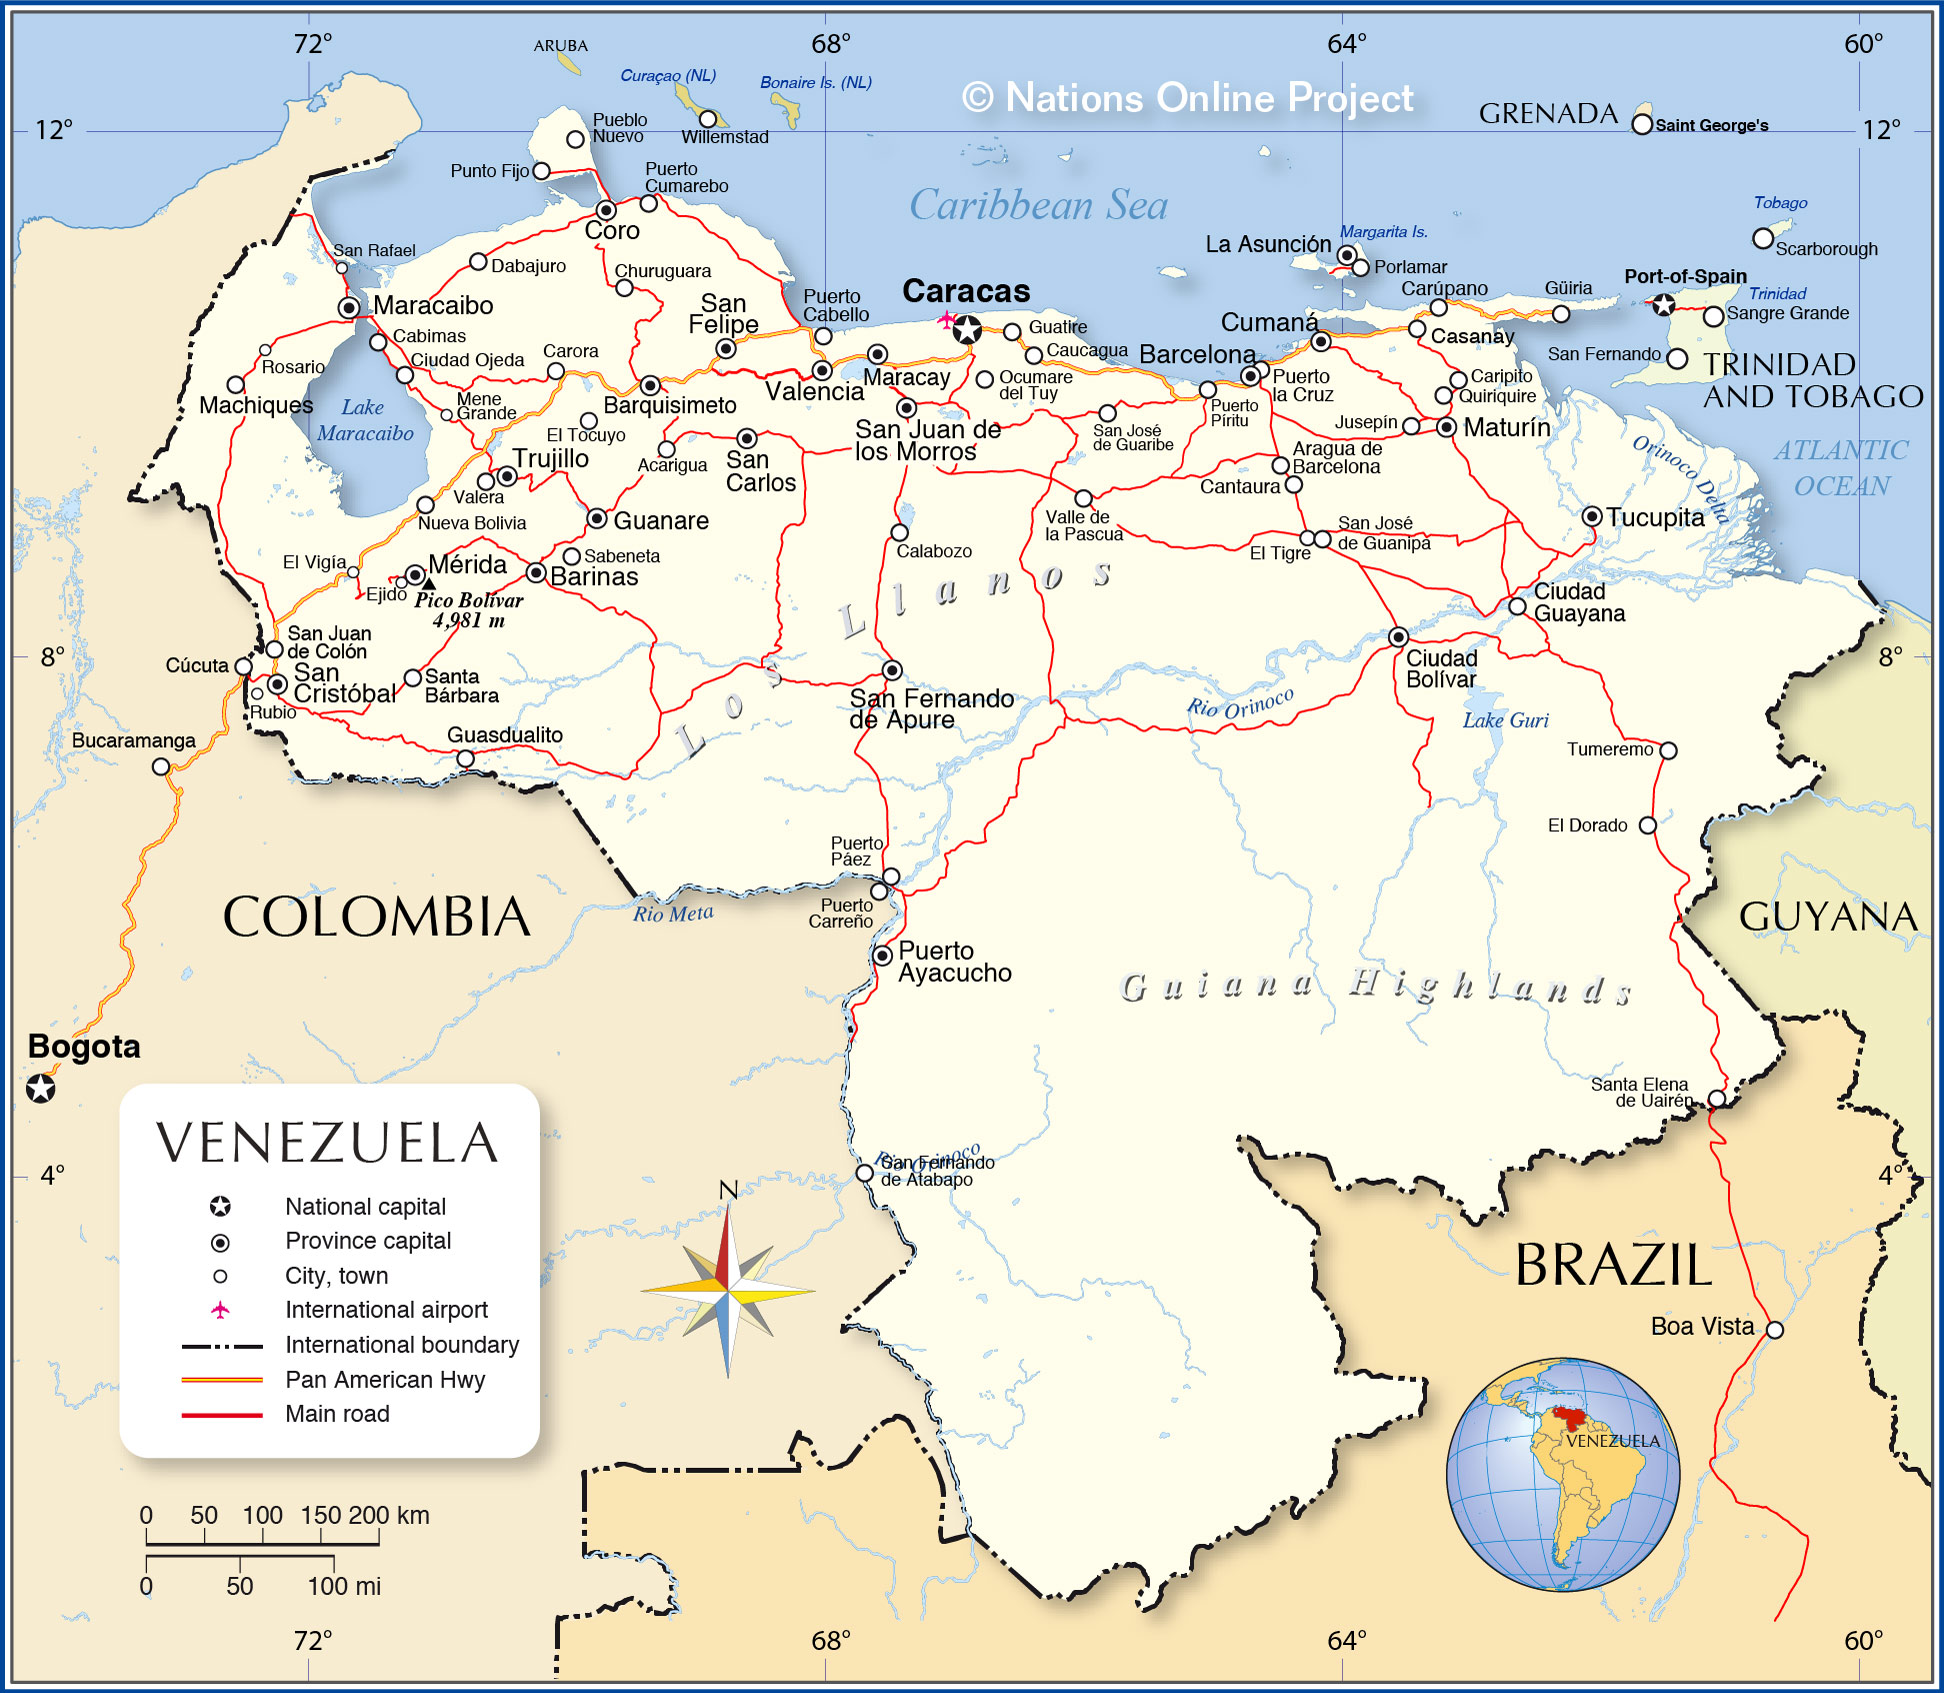 Detailed Map of Venezuela Nations Online Project